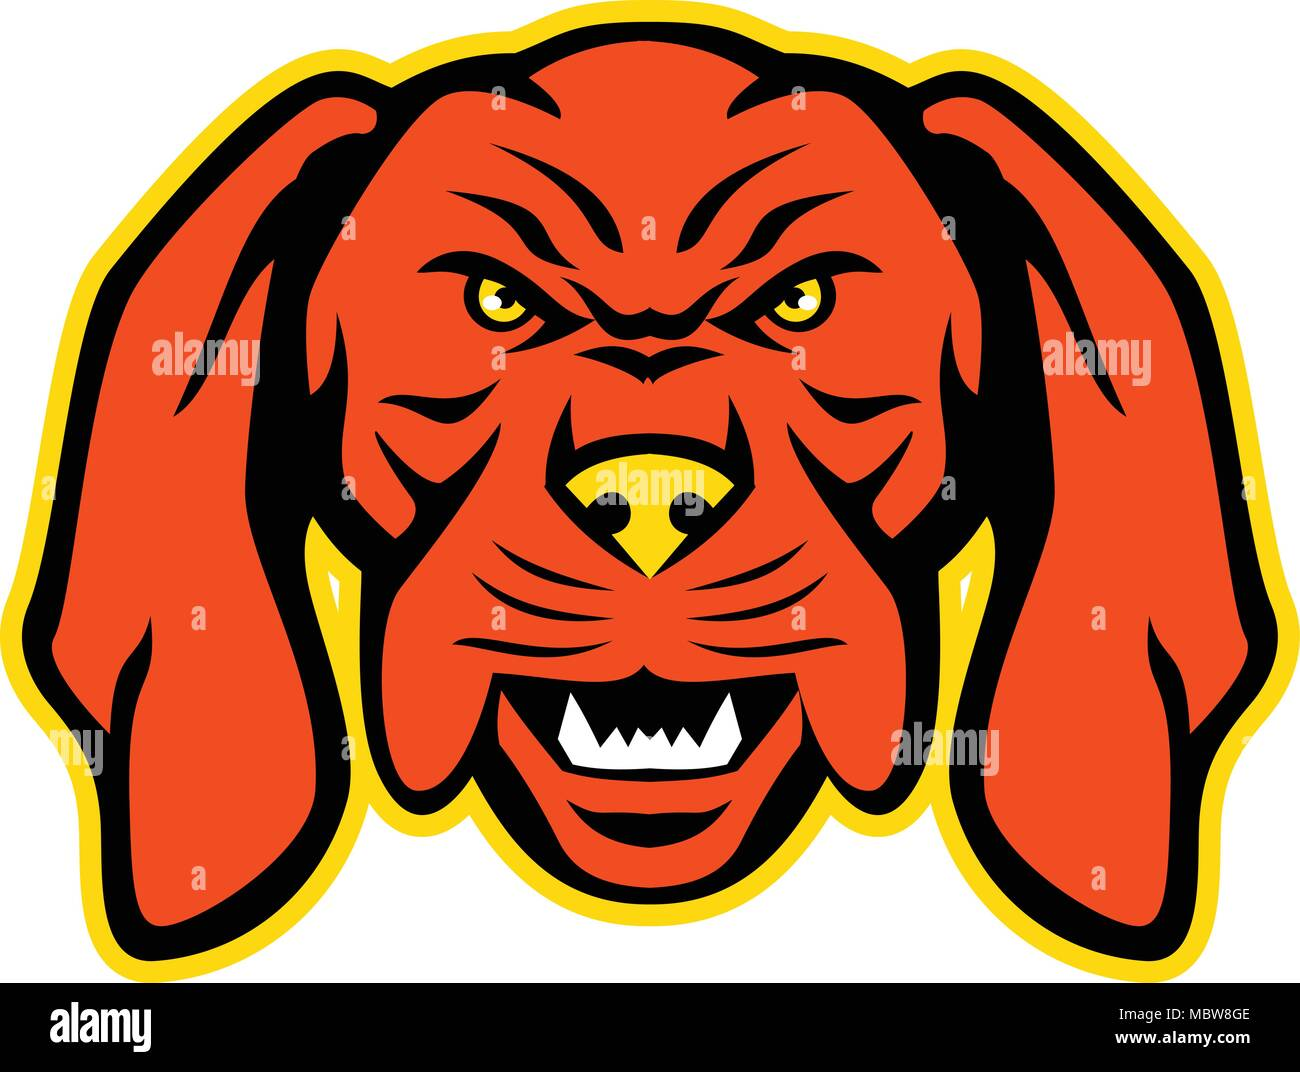 5d2074761a Mascot icon illustration of head of an angry and aggressive Hungarian or  Magyar Vizsla sporting